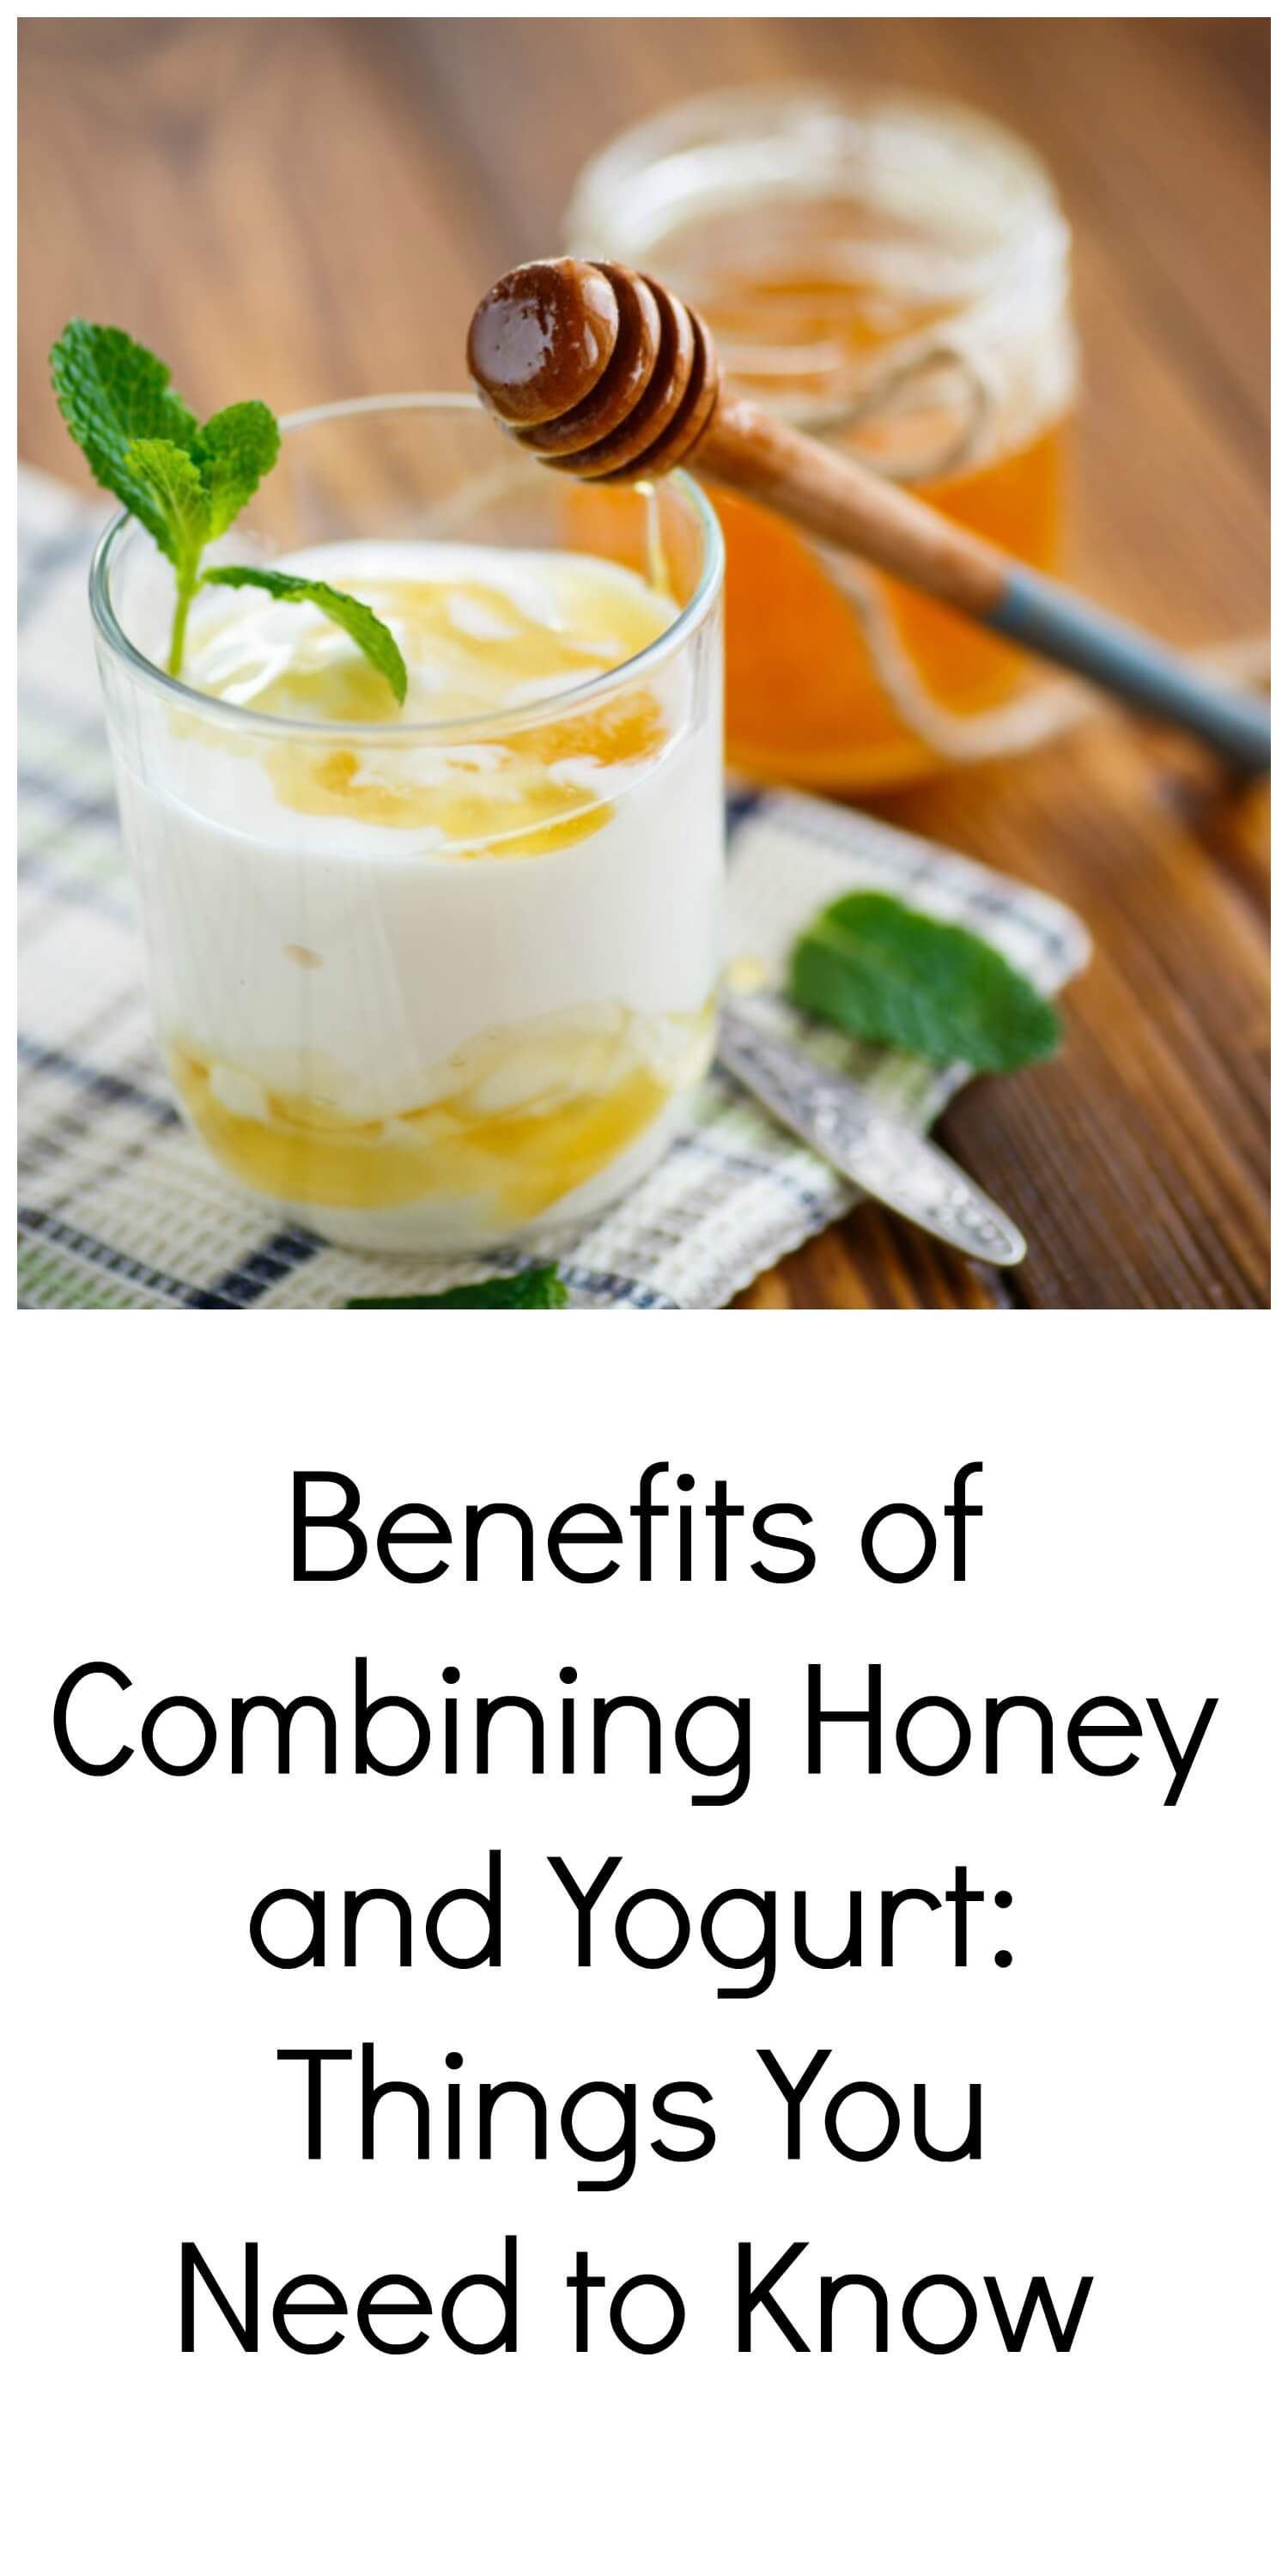 benefits of combining honey & yogurt-things you need to know